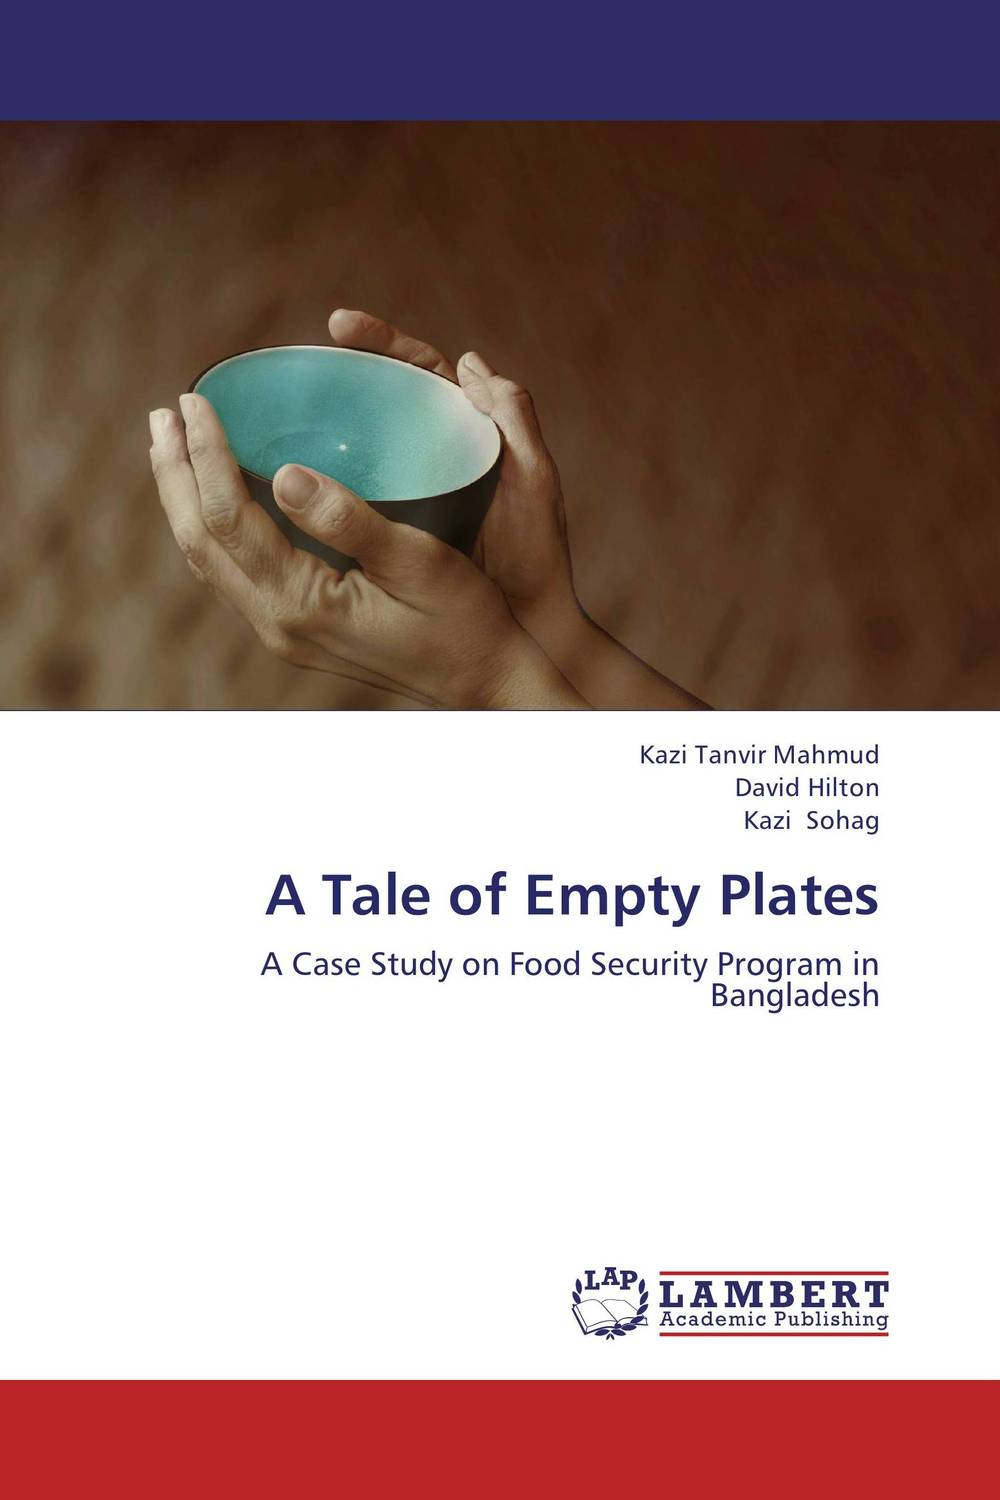 A Tale of Empty Plates living to tell the tale